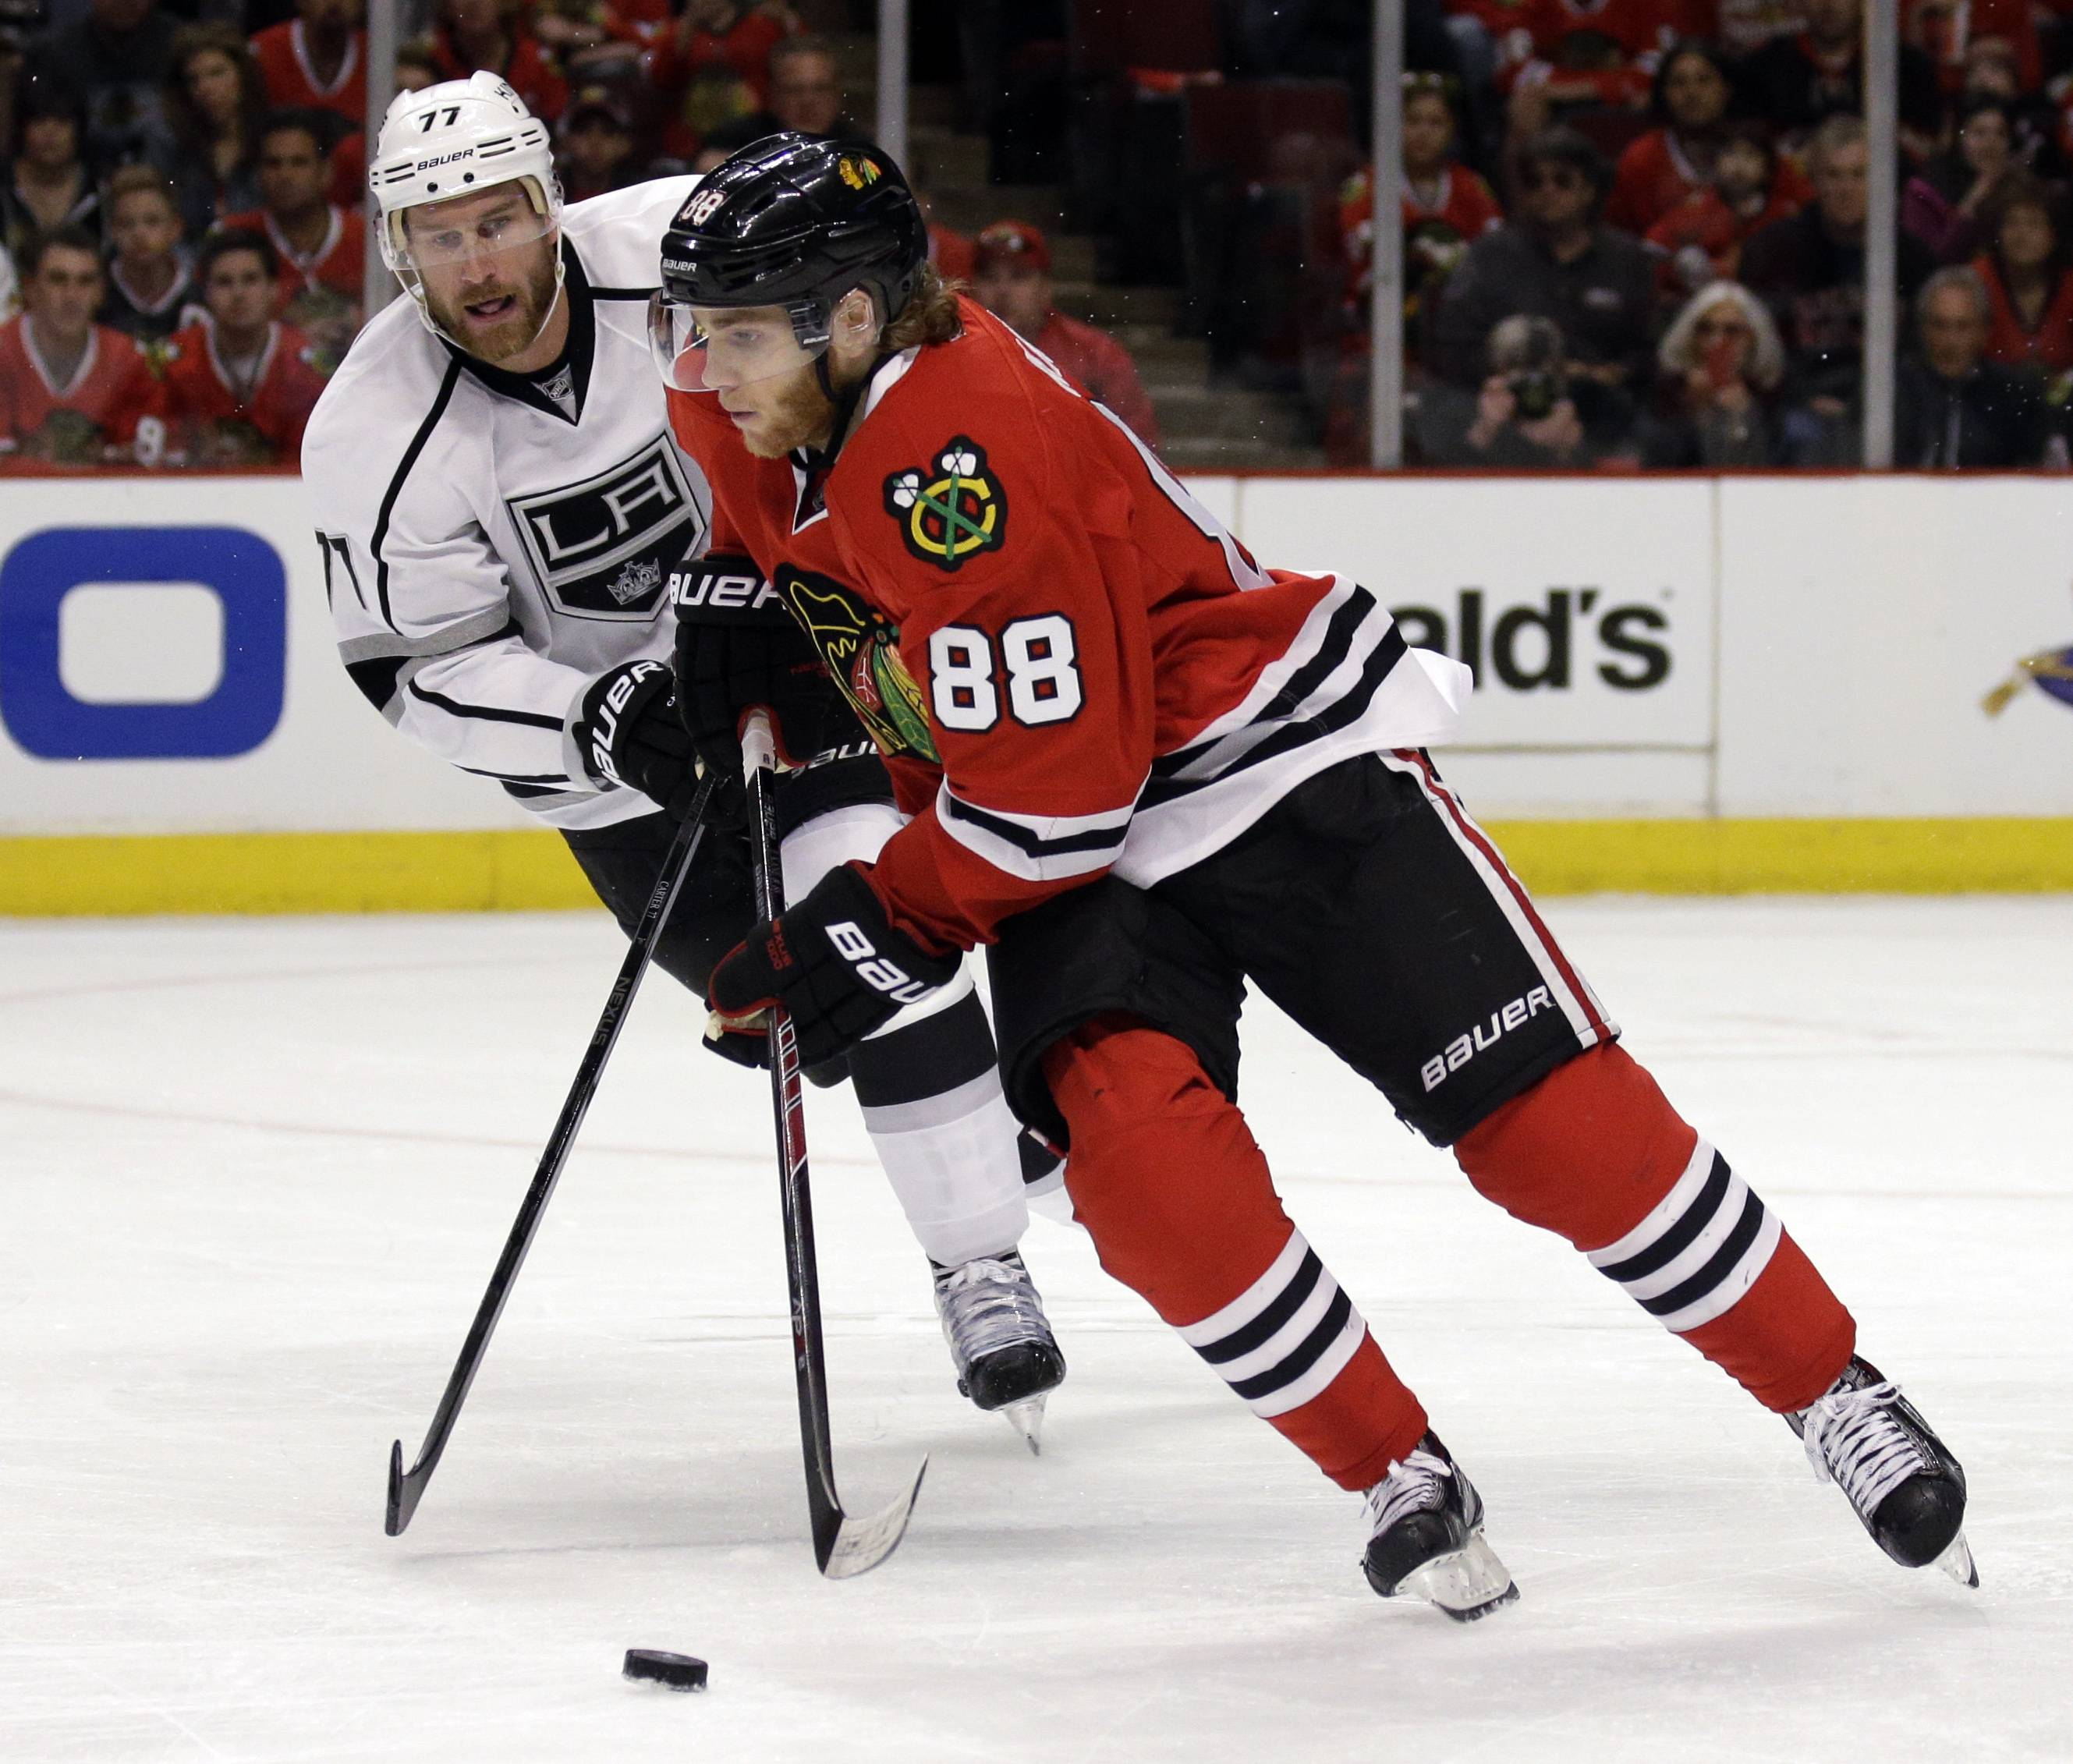 Chicago Blackhawks' Patrick Kane (88), right, controls the puck against Los Angeles Kings' Jeff Carter (77) during the first period.